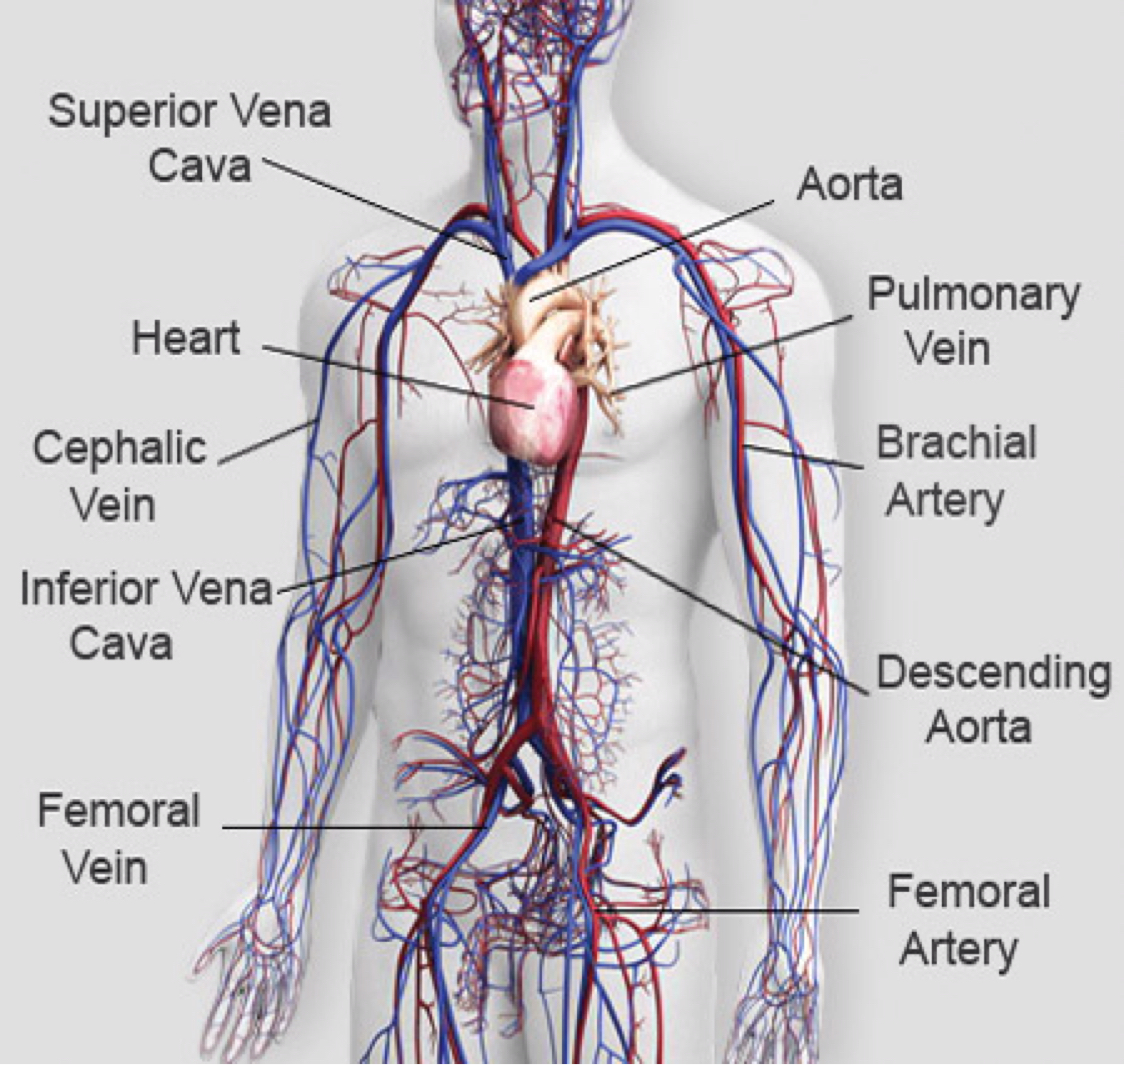 Human Vascular System Diagram Courses Photography Gallery Sites With